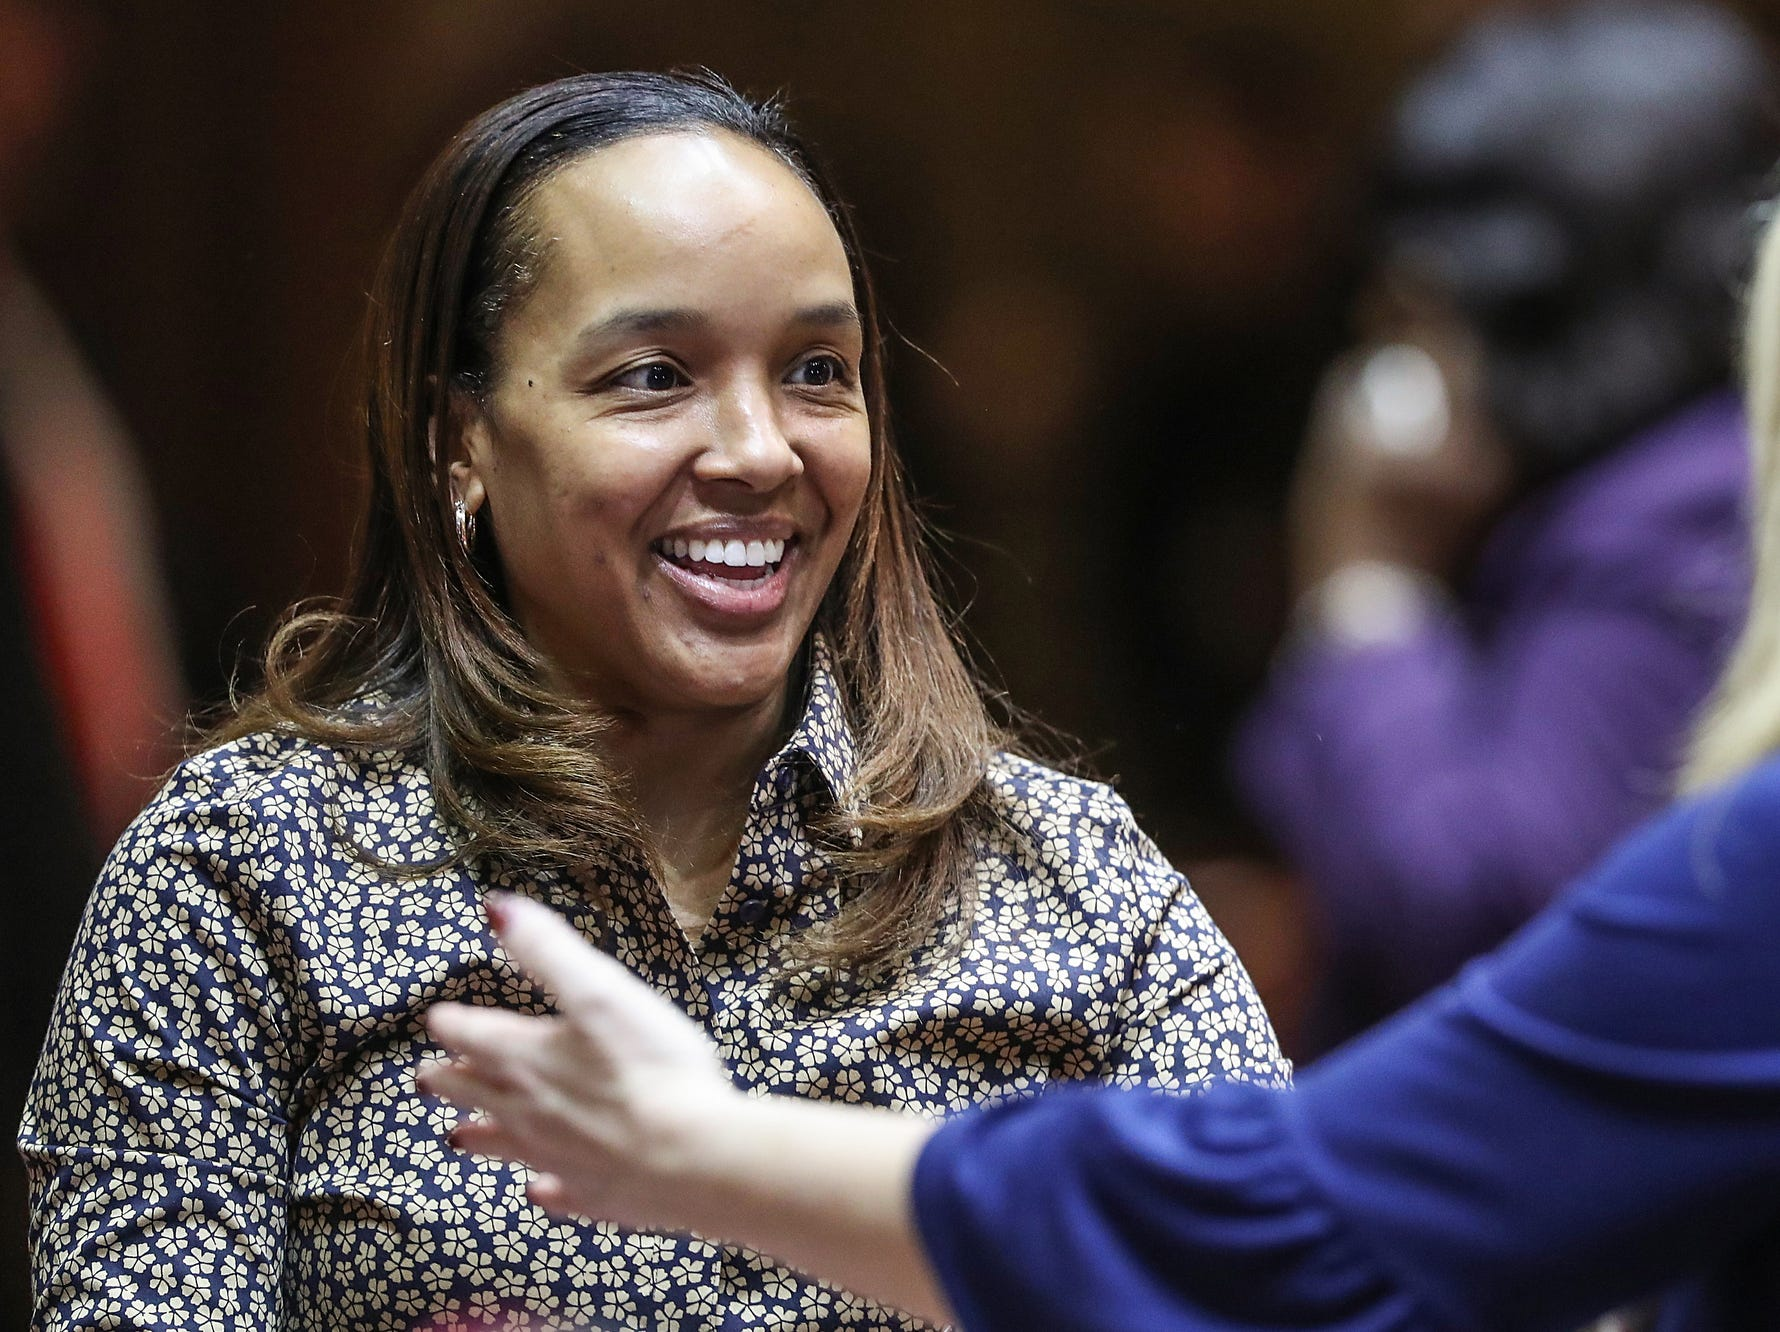 Rep. Ragen Hatcher is greeted by a colleague on the starting day of legislative session at the Indiana Statehouse, Indianapolis, Thursday, Jan. 3, 2019.